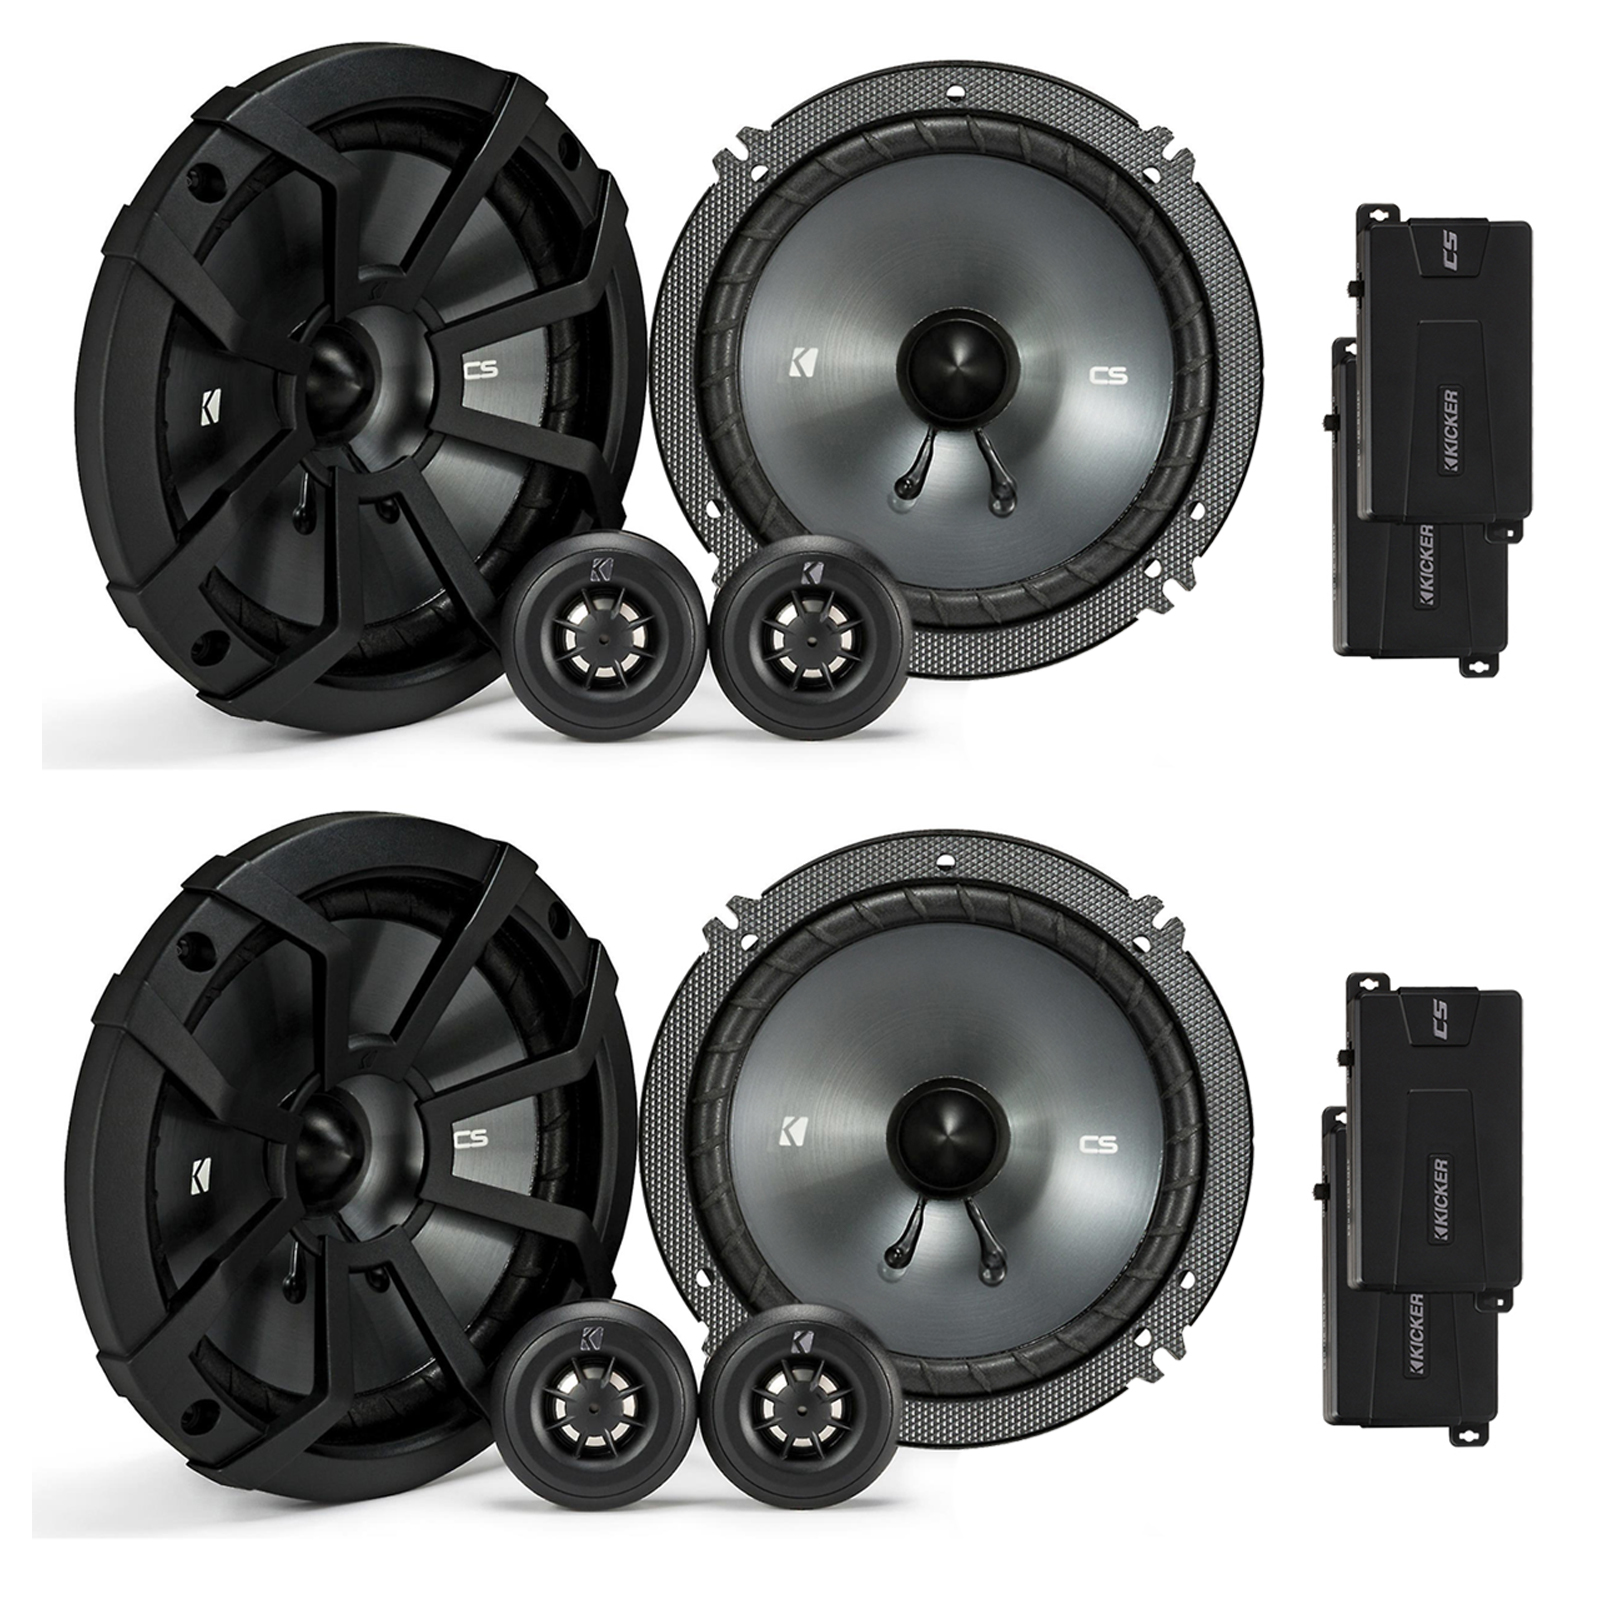 4 x Kicker 43CSS654 CSS65 6.5-Inch Component Speaker System with .75-Inch tweeters, 4-Ohm